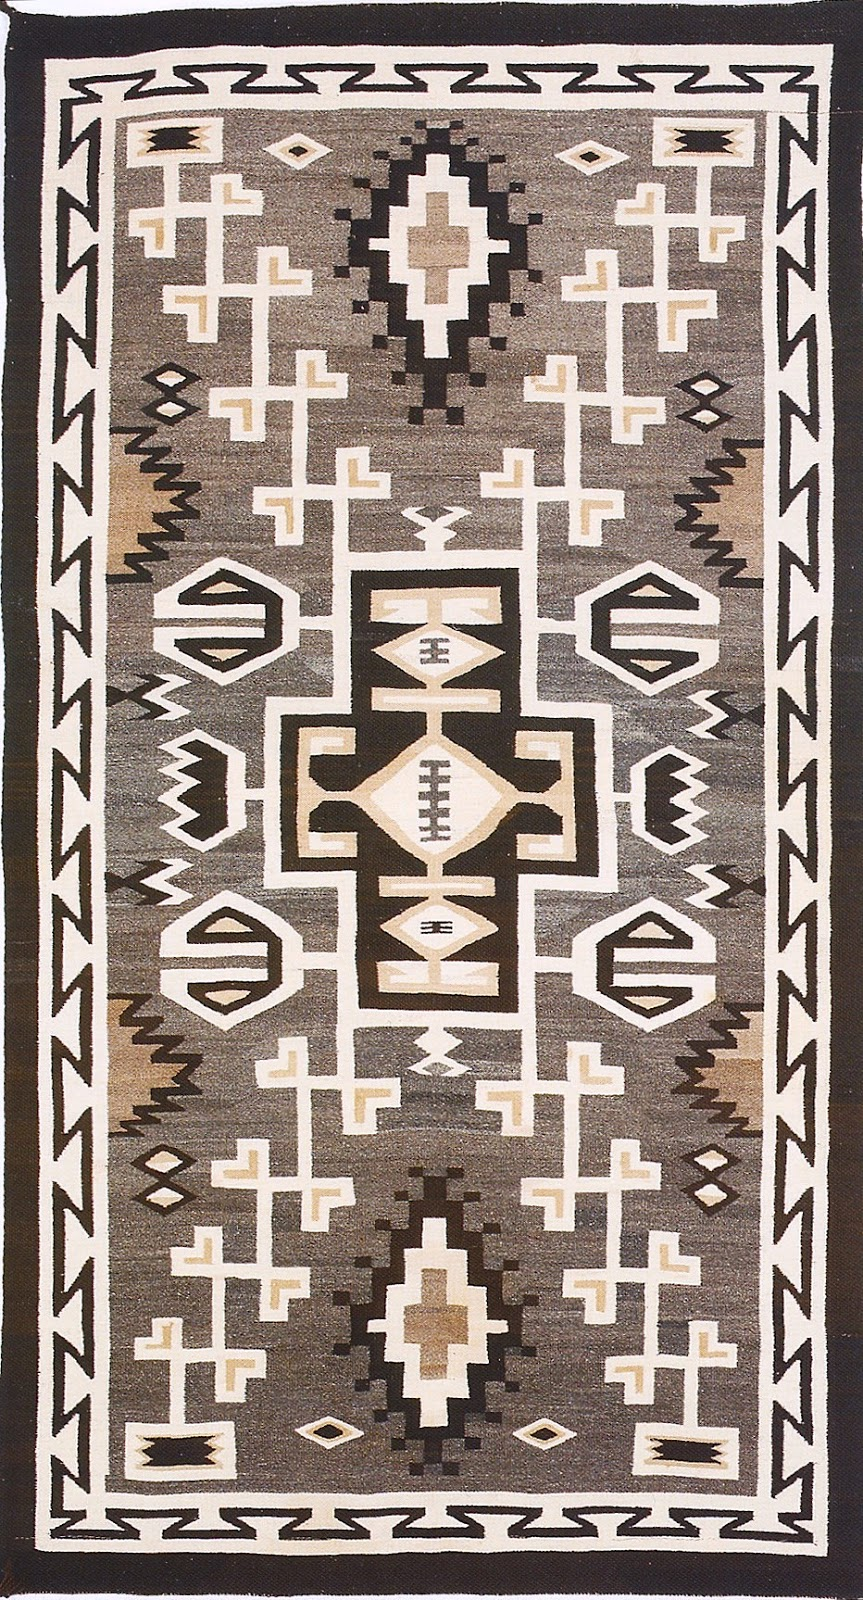 patio b on earth c rugs com rug blueberry specialty oval cream feet x prod living src sale braided furniture capitol outdoor sears